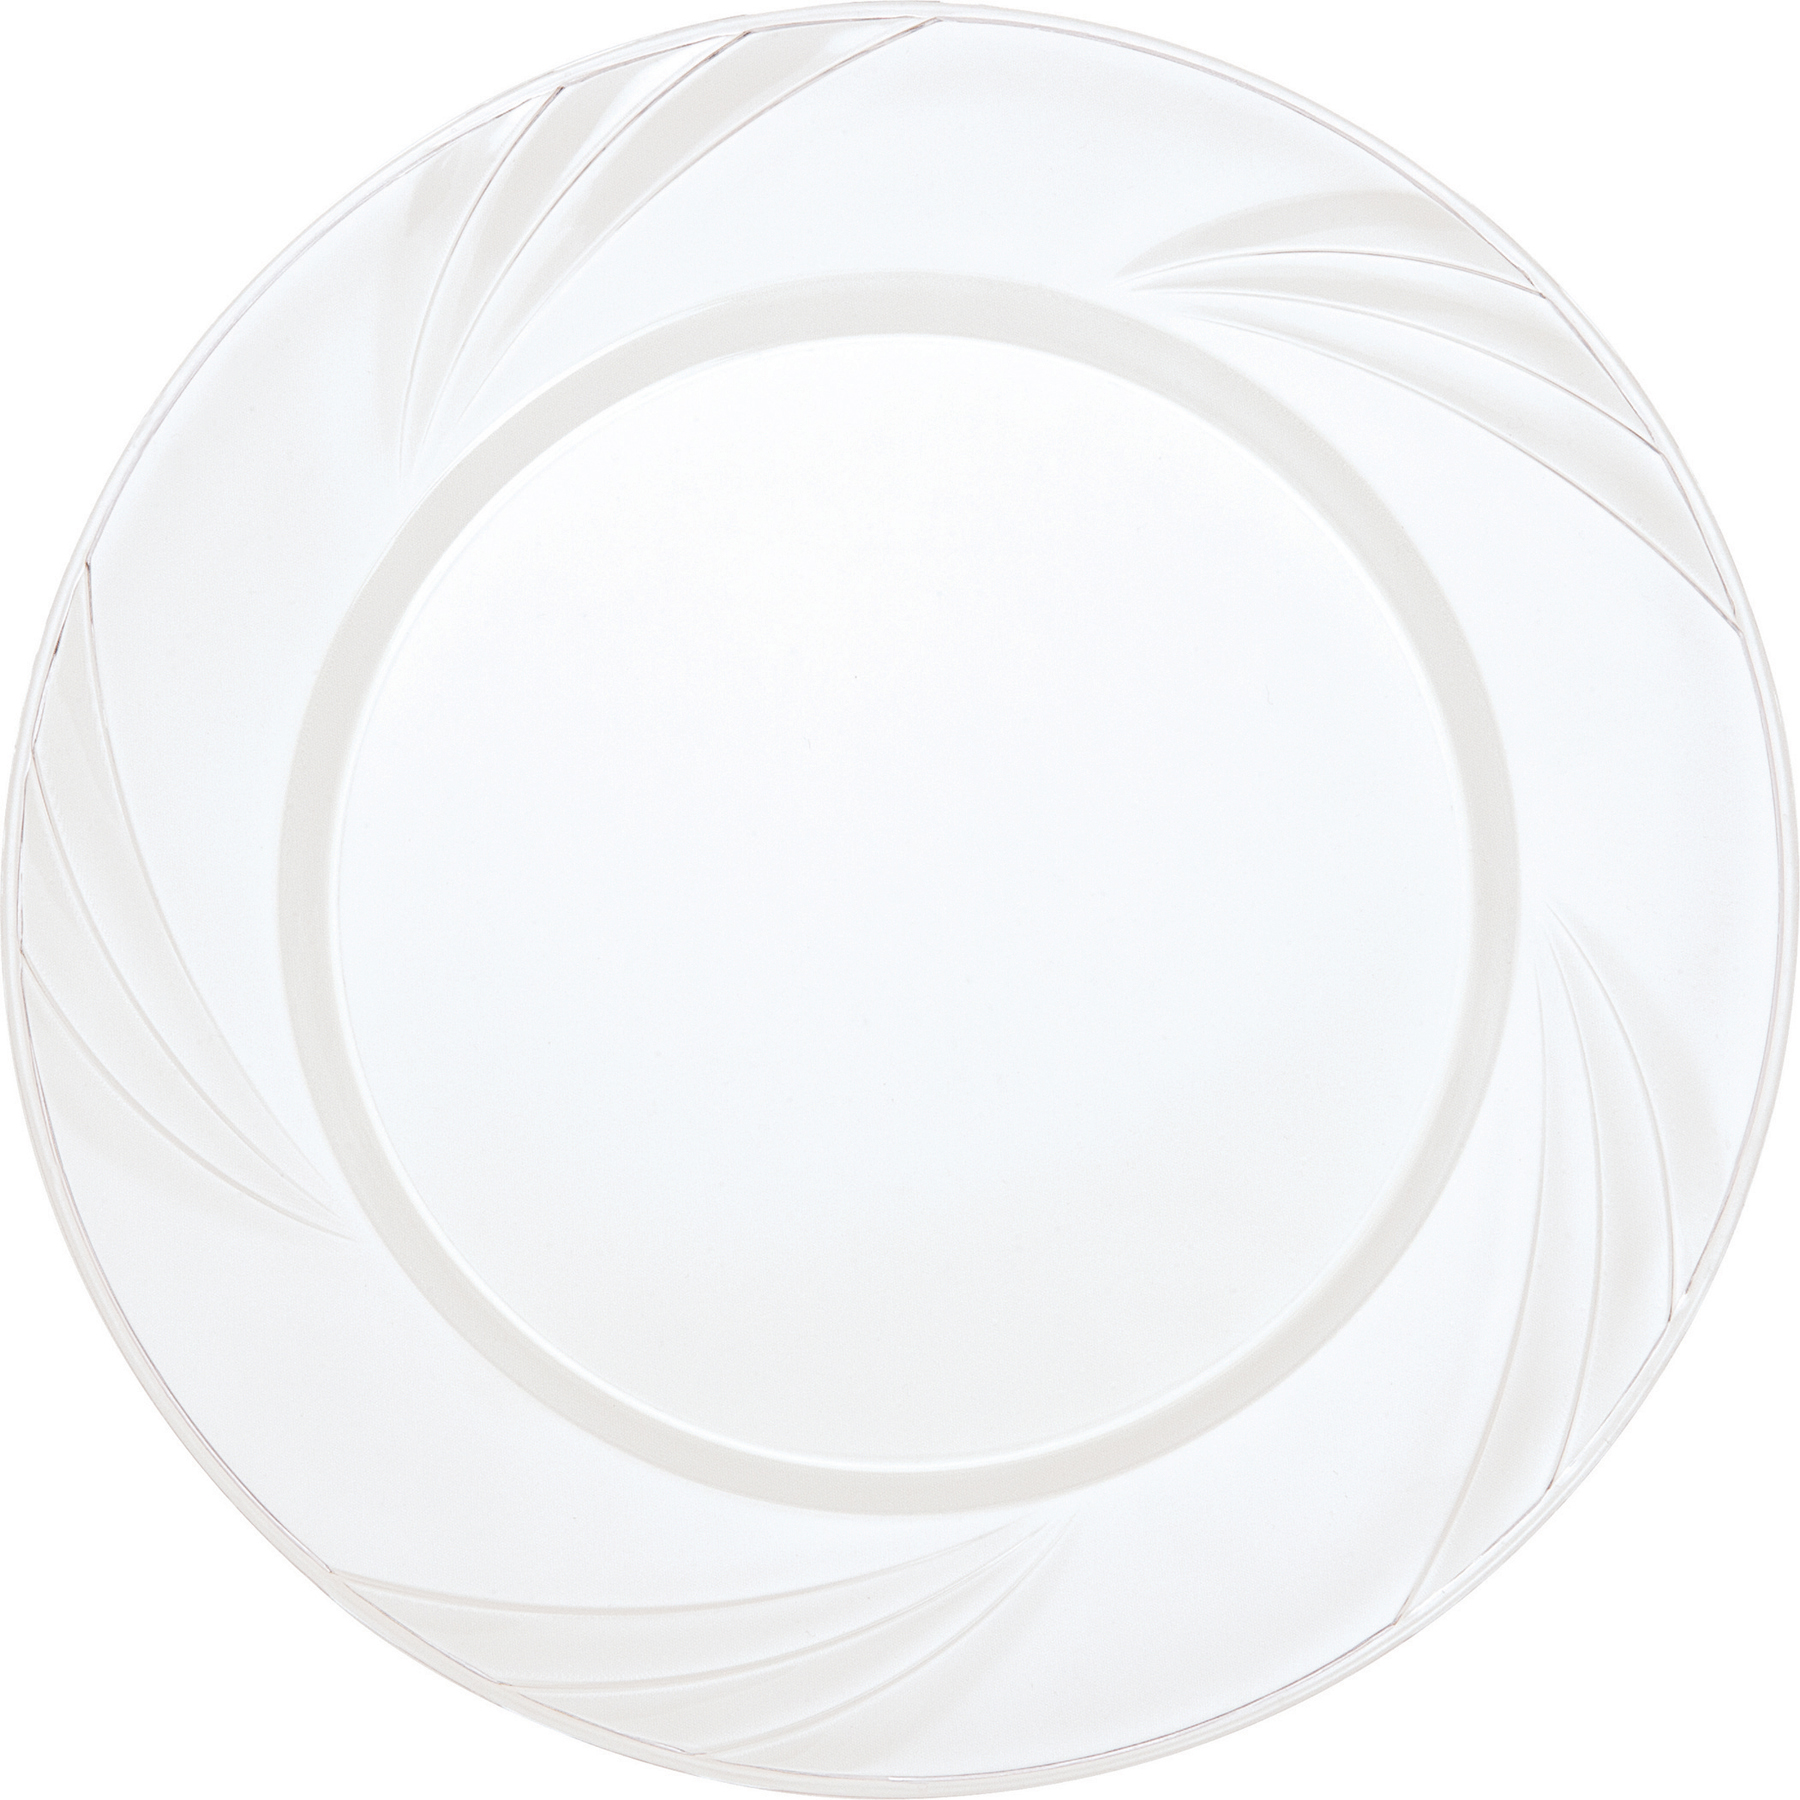 7 Etched Clear Plastic Plates 10ct · Bulk Disposable Dinnerware Discount ...  sc 1 st  Best Image Engine & Mesmerizing Discount Clear Plastic Plates Images - Best Image Engine ...